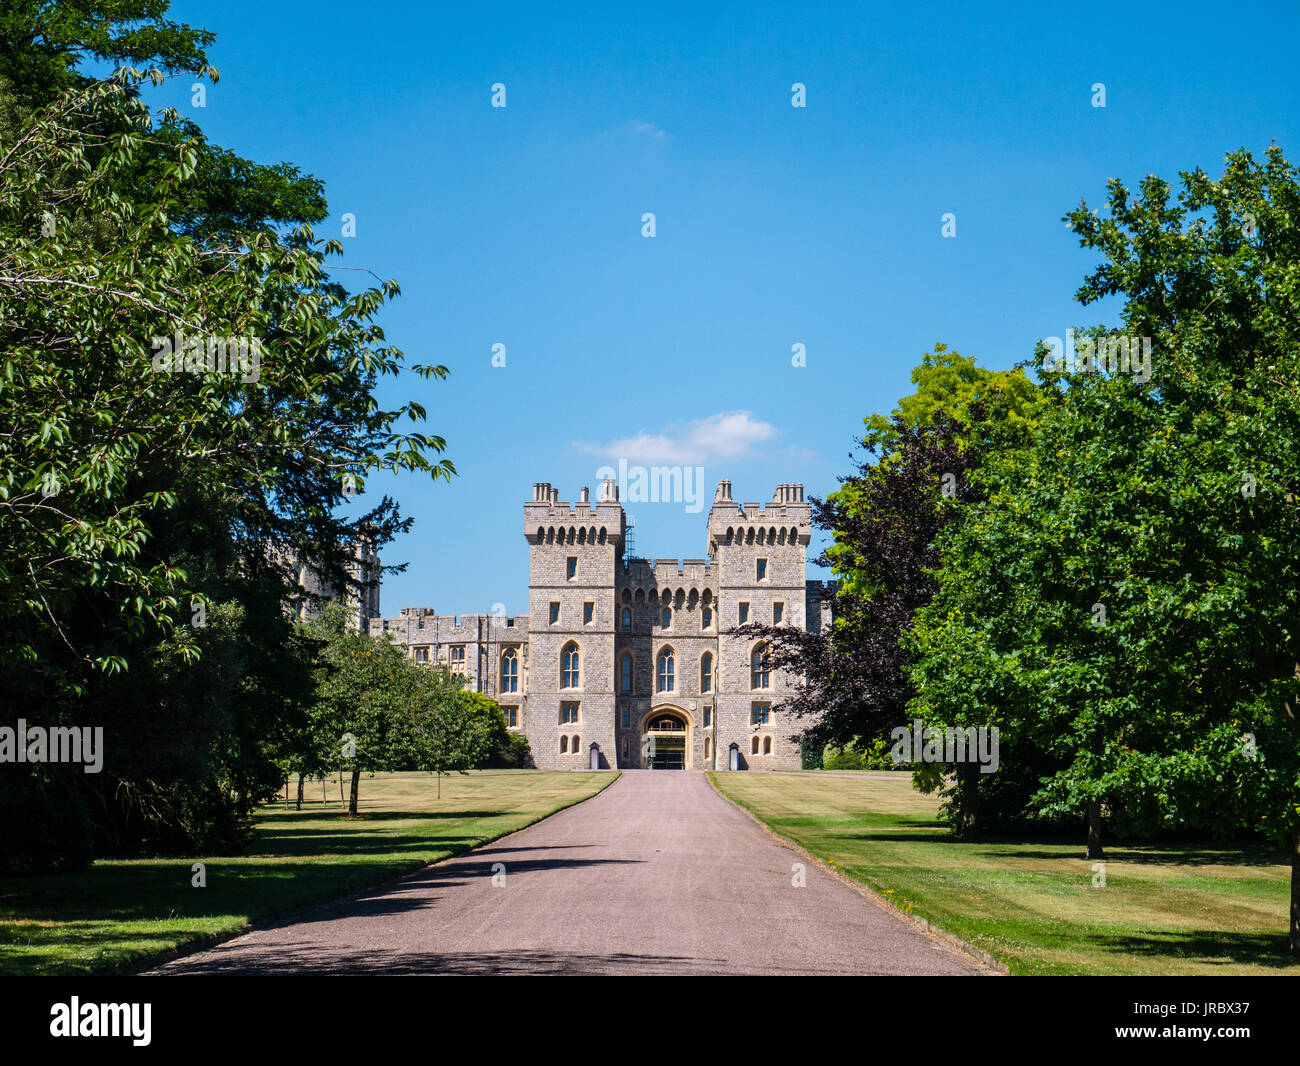 Windsor Castle View from the Long Walk, Windsor, Berkshire, England - Stock Image